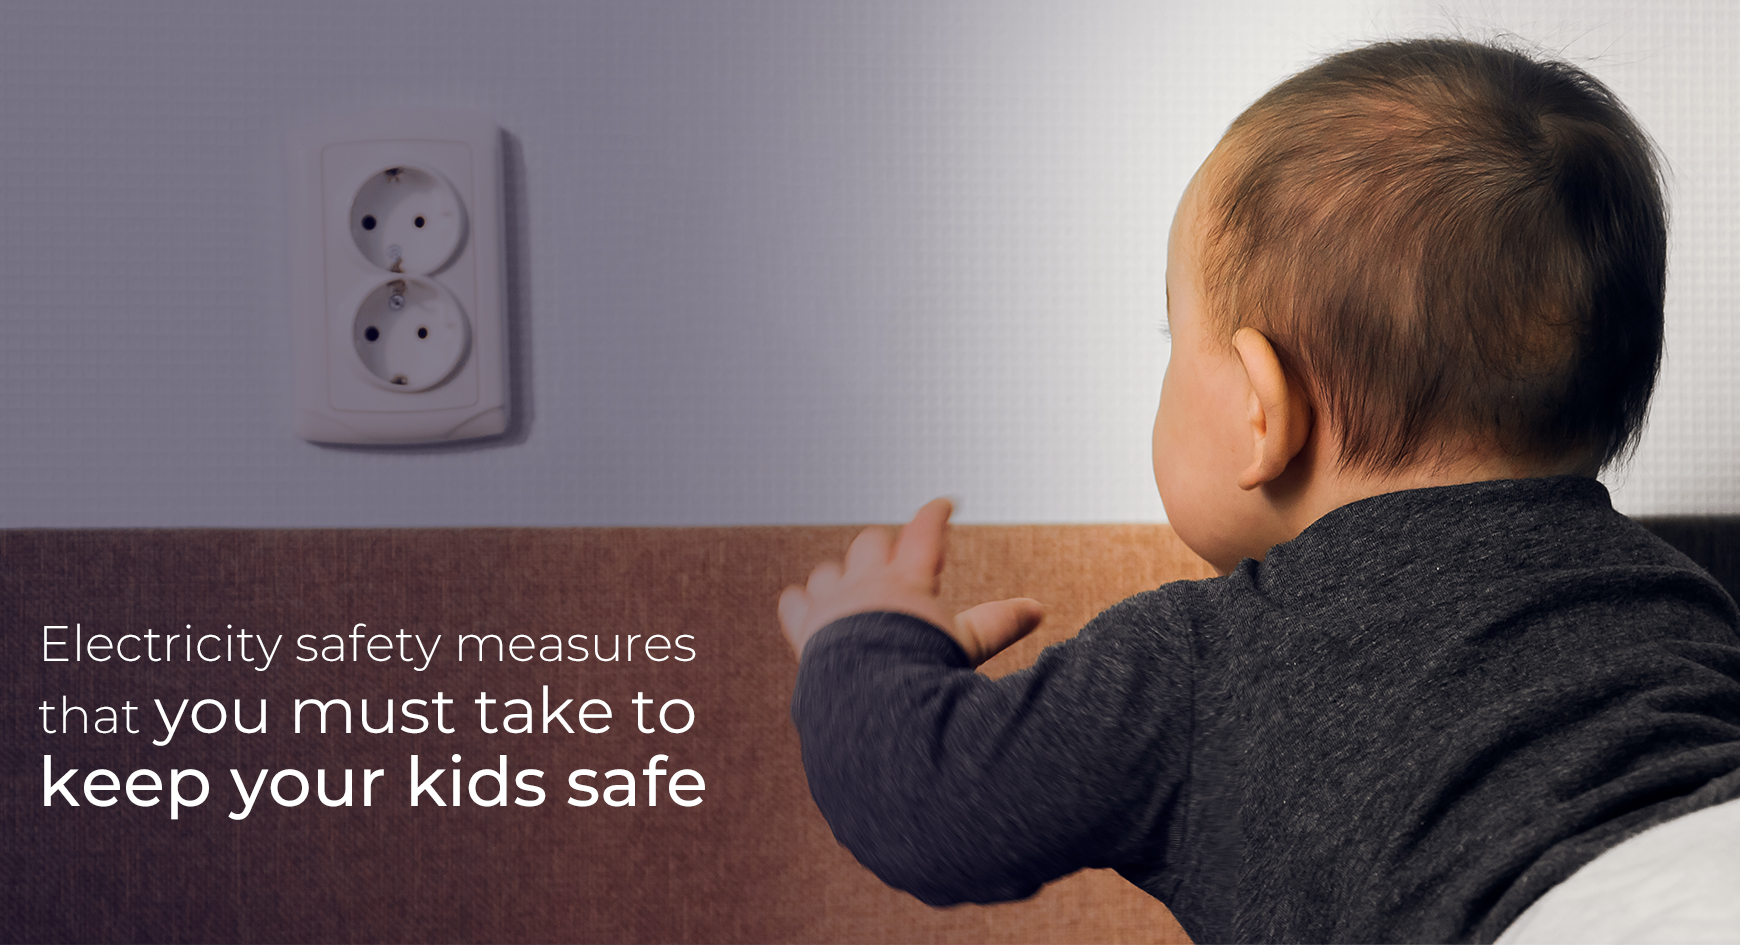 Electricity safety measures that you must take to keep your kids safe